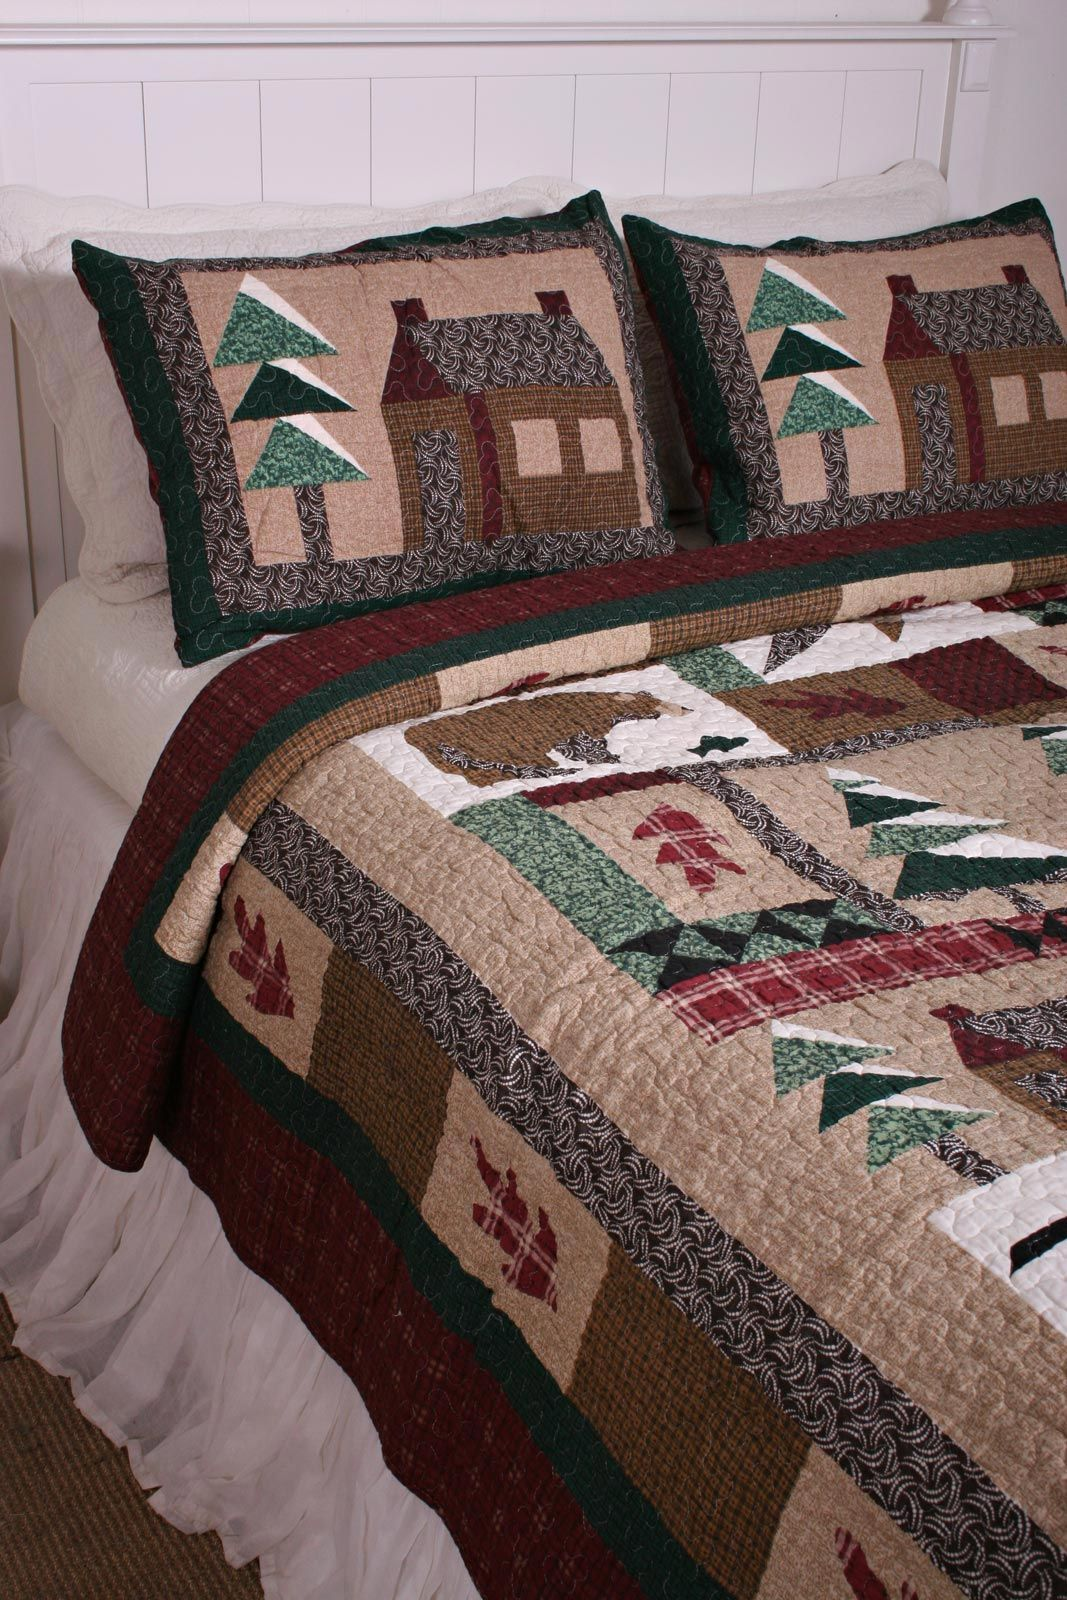 Lodge Winter Cabin in the Woods Cotton Quilt | Cabin Decorating ... : cabin style quilts - Adamdwight.com